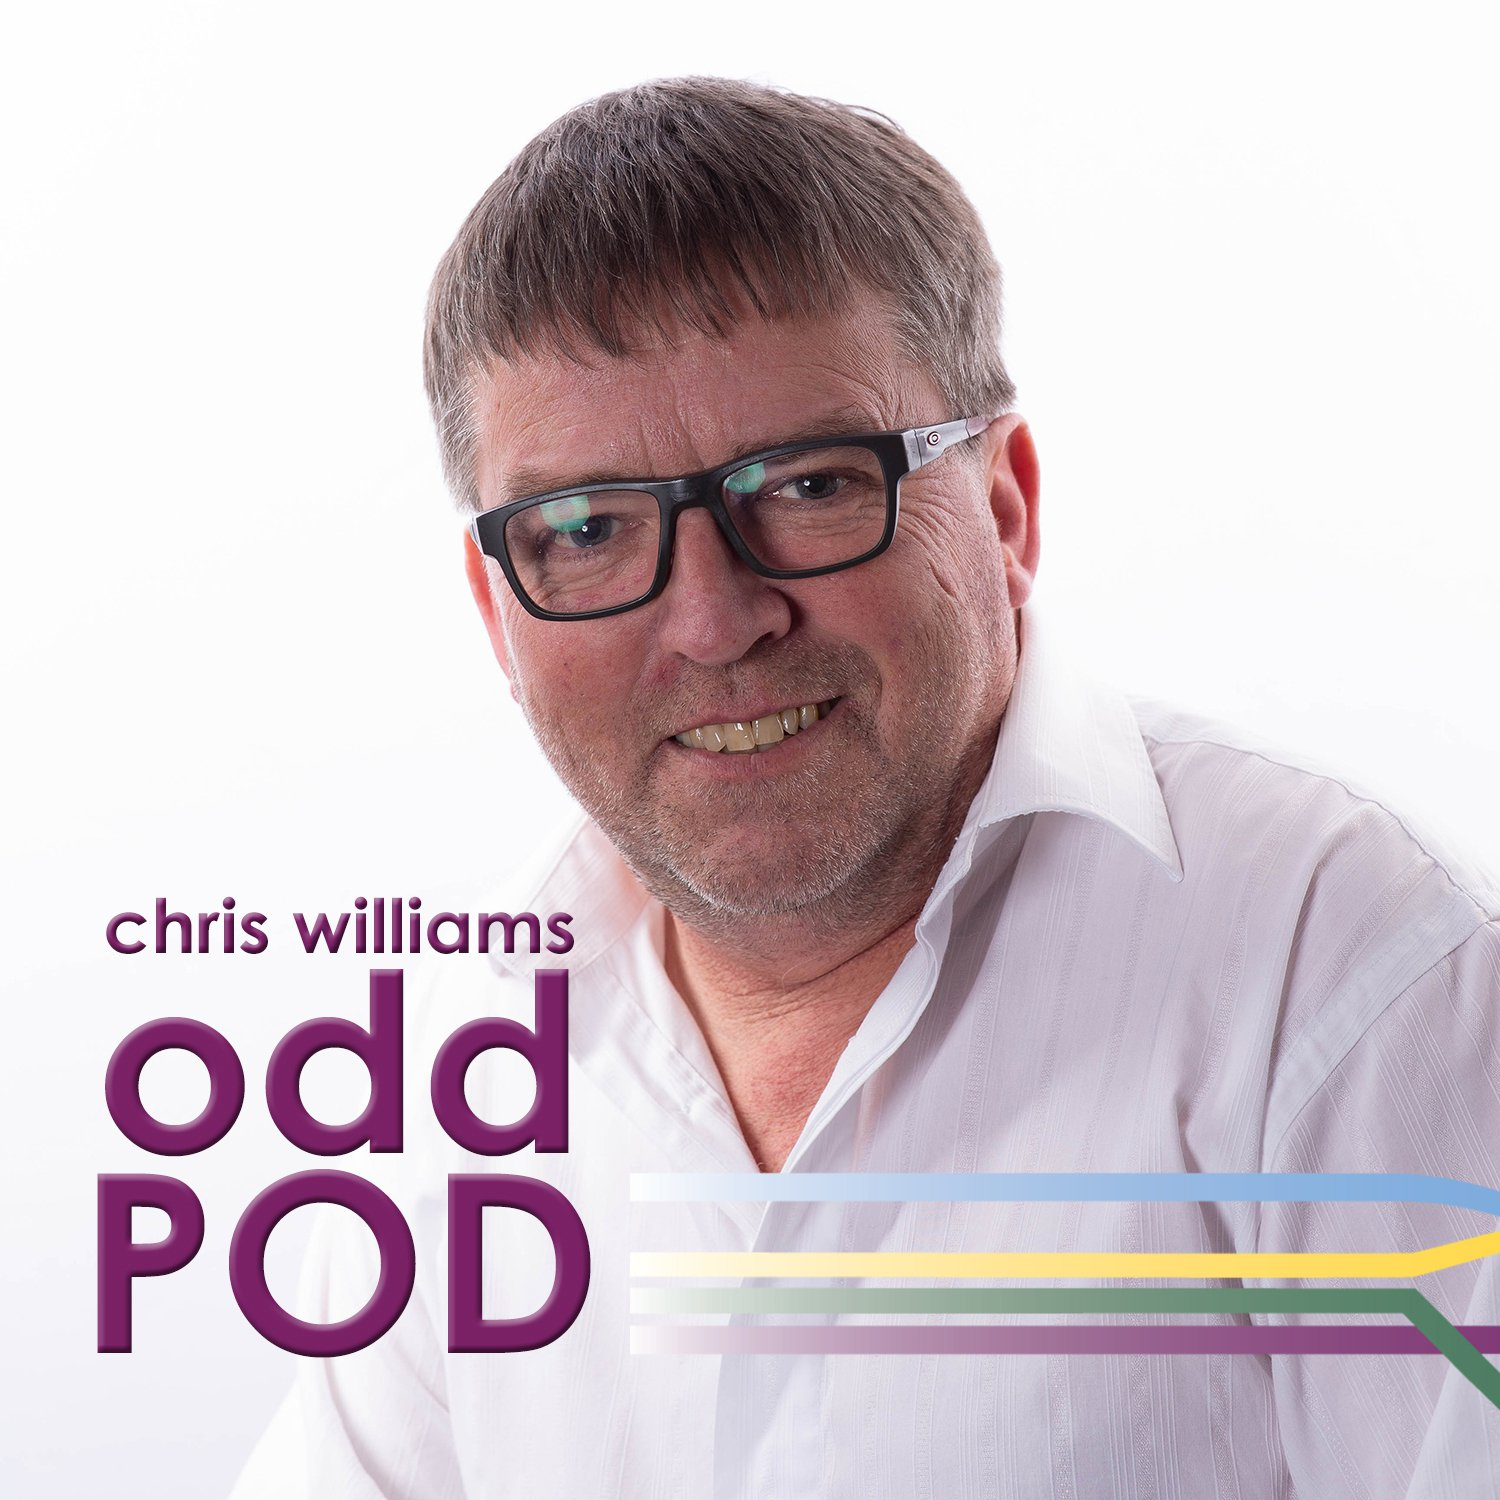 Chris Williams Odd Pod